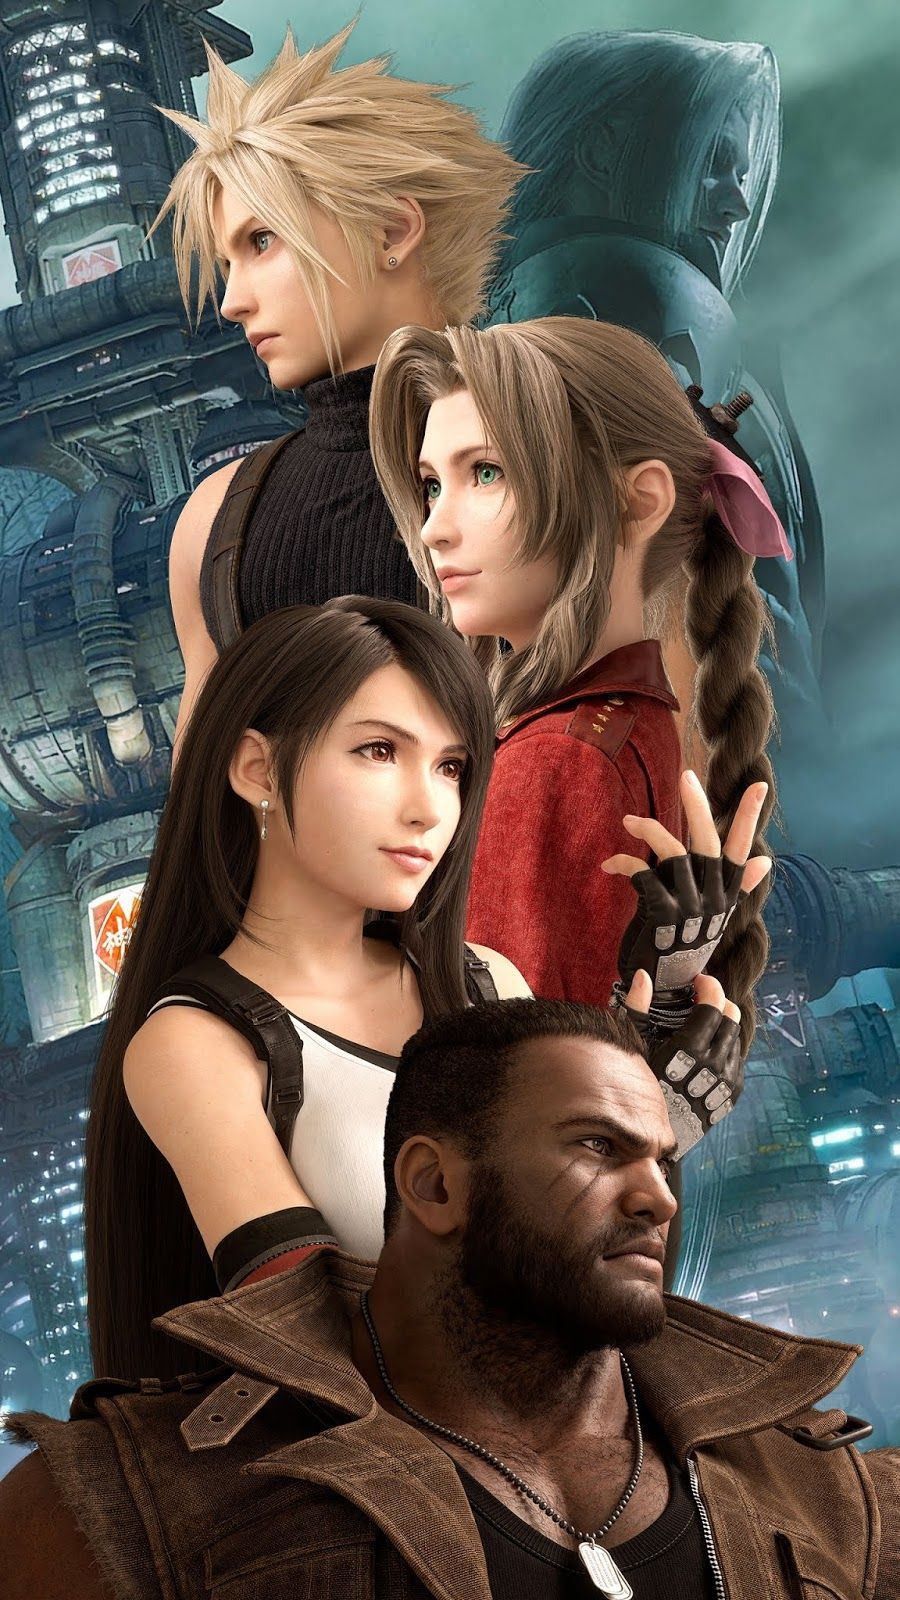 Final Fantasy Viii Remastered Wallpapers Wallpaper Cave Final Fantasy Vii Final Fantasy Vii Remake Final Fantasy Xv